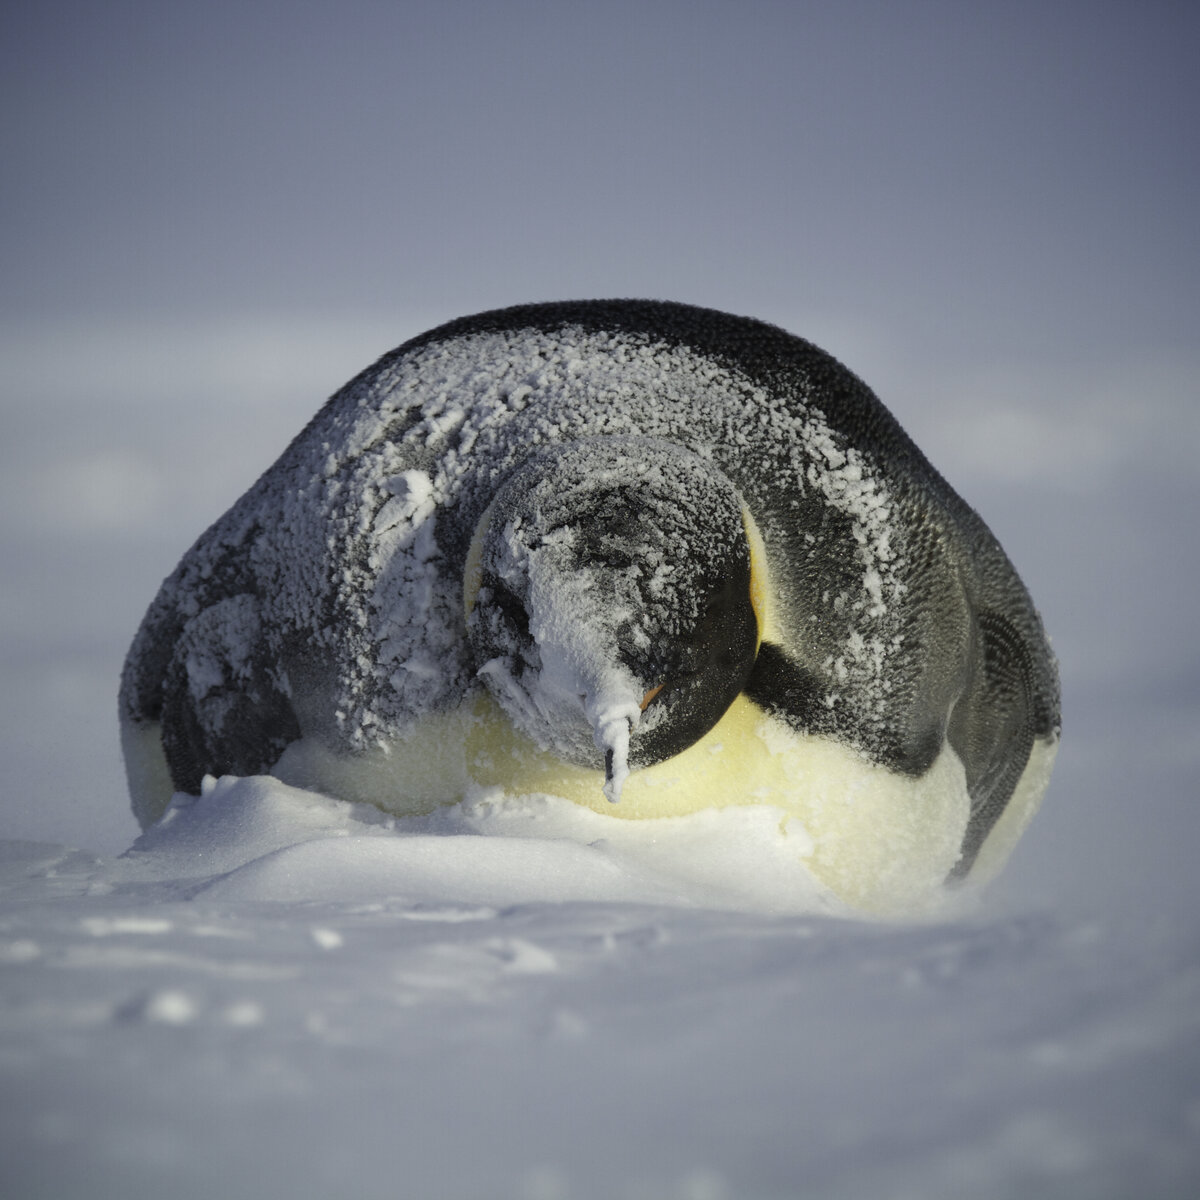 Adult emperor penguin gets covered with snow, during a storm